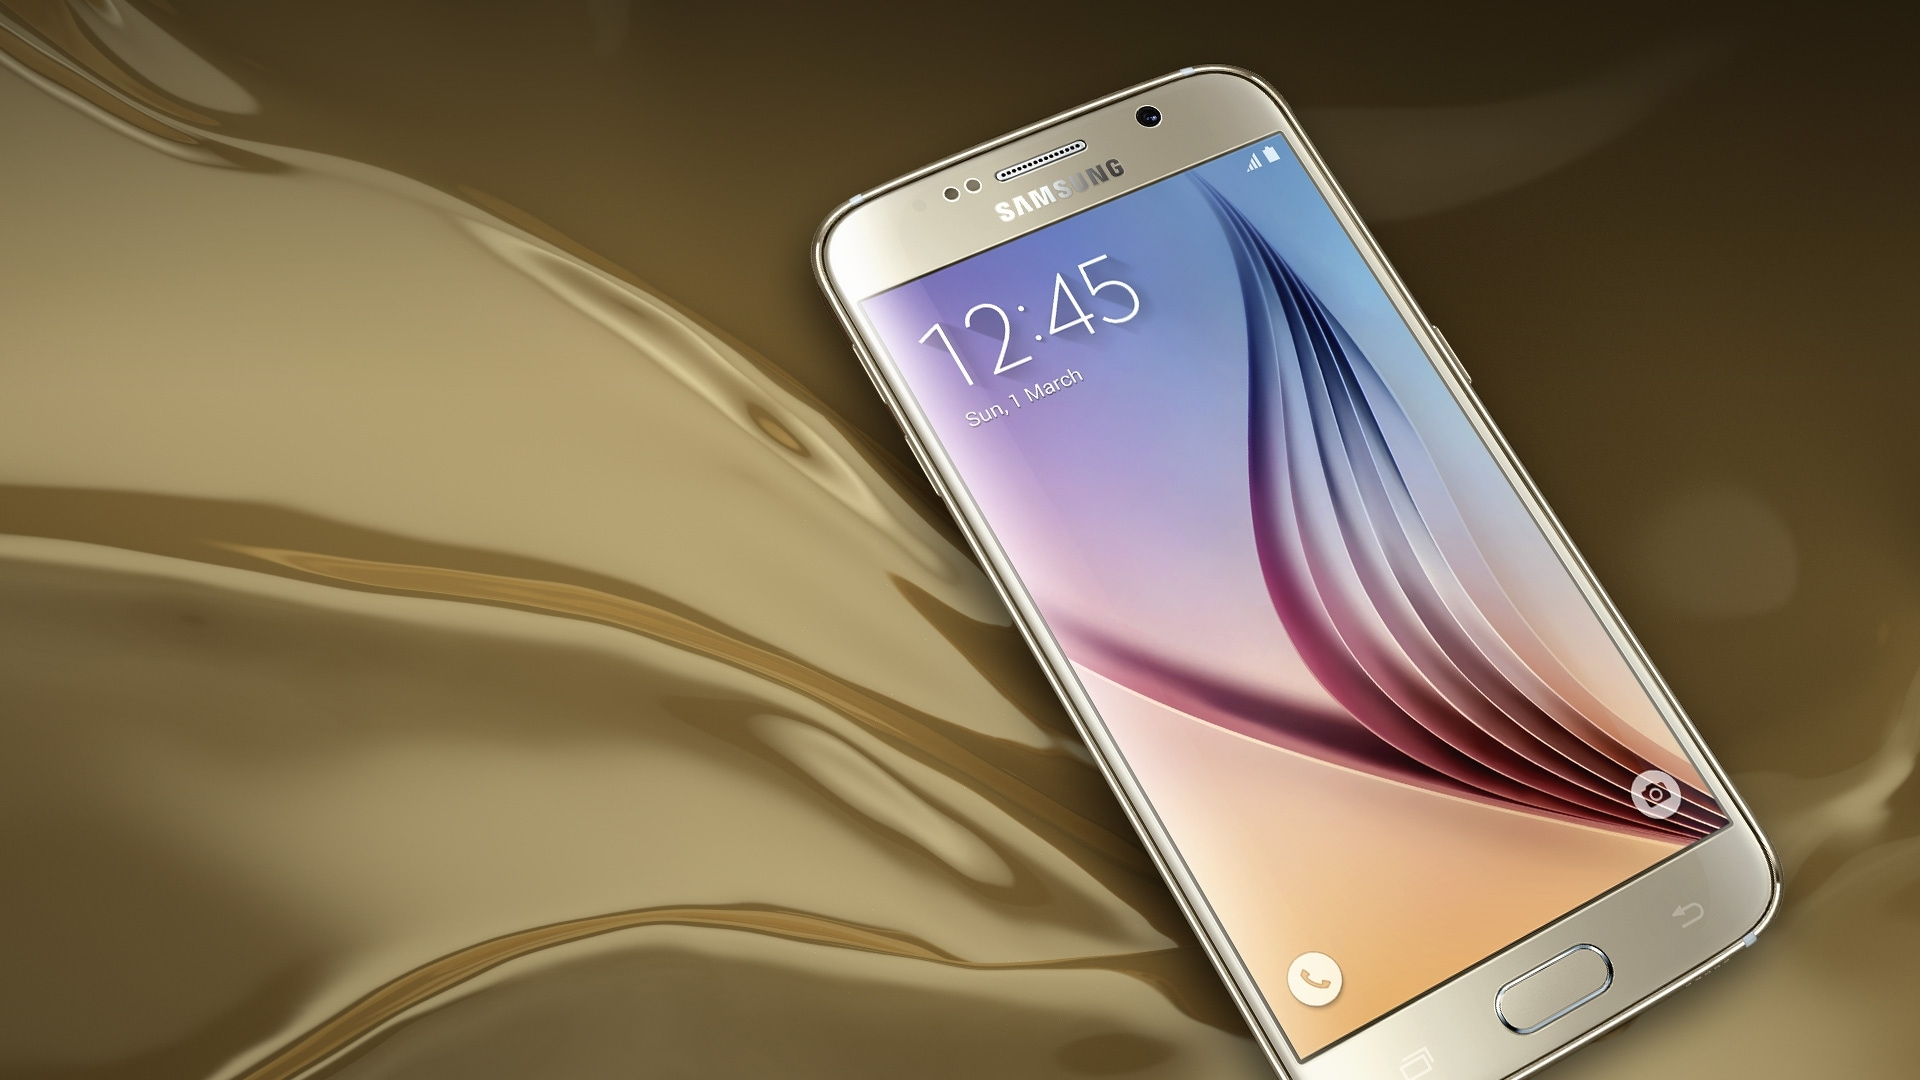 Galaxy S6 product images